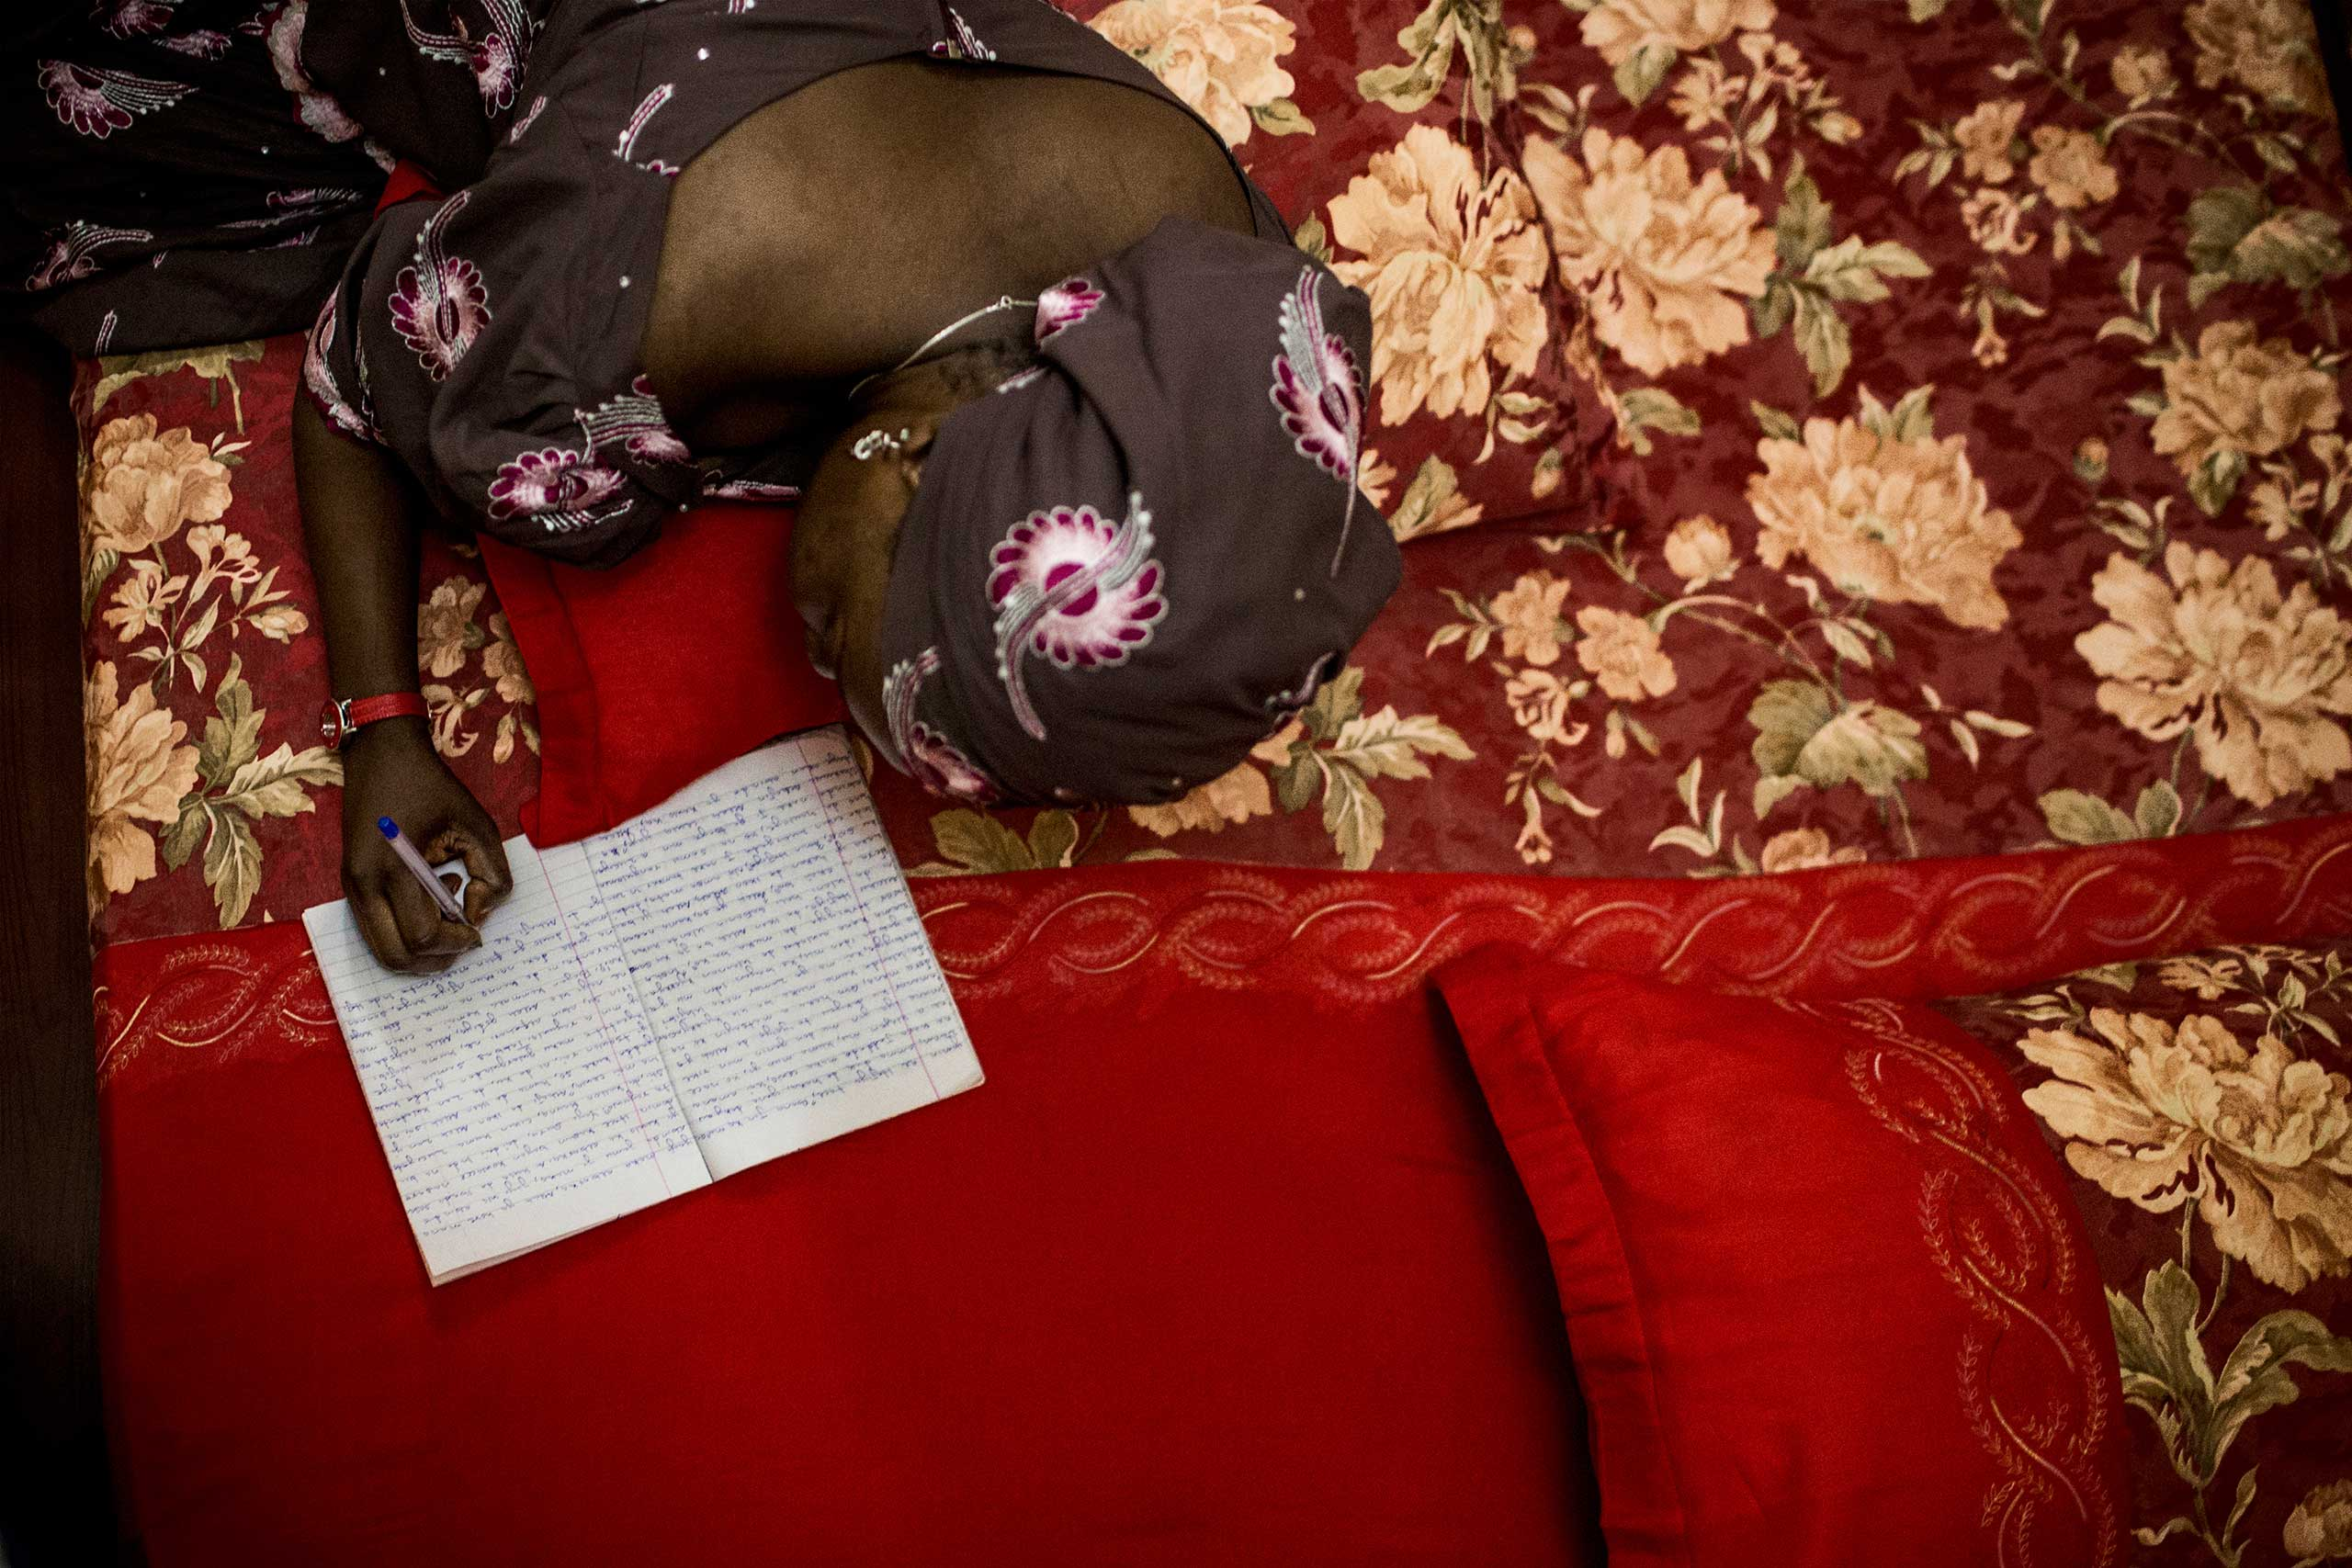 Khadija Gudaji works on her novel while laying in bed at her home in Kano, Northern Nigeria, Sept. 29, 2013.